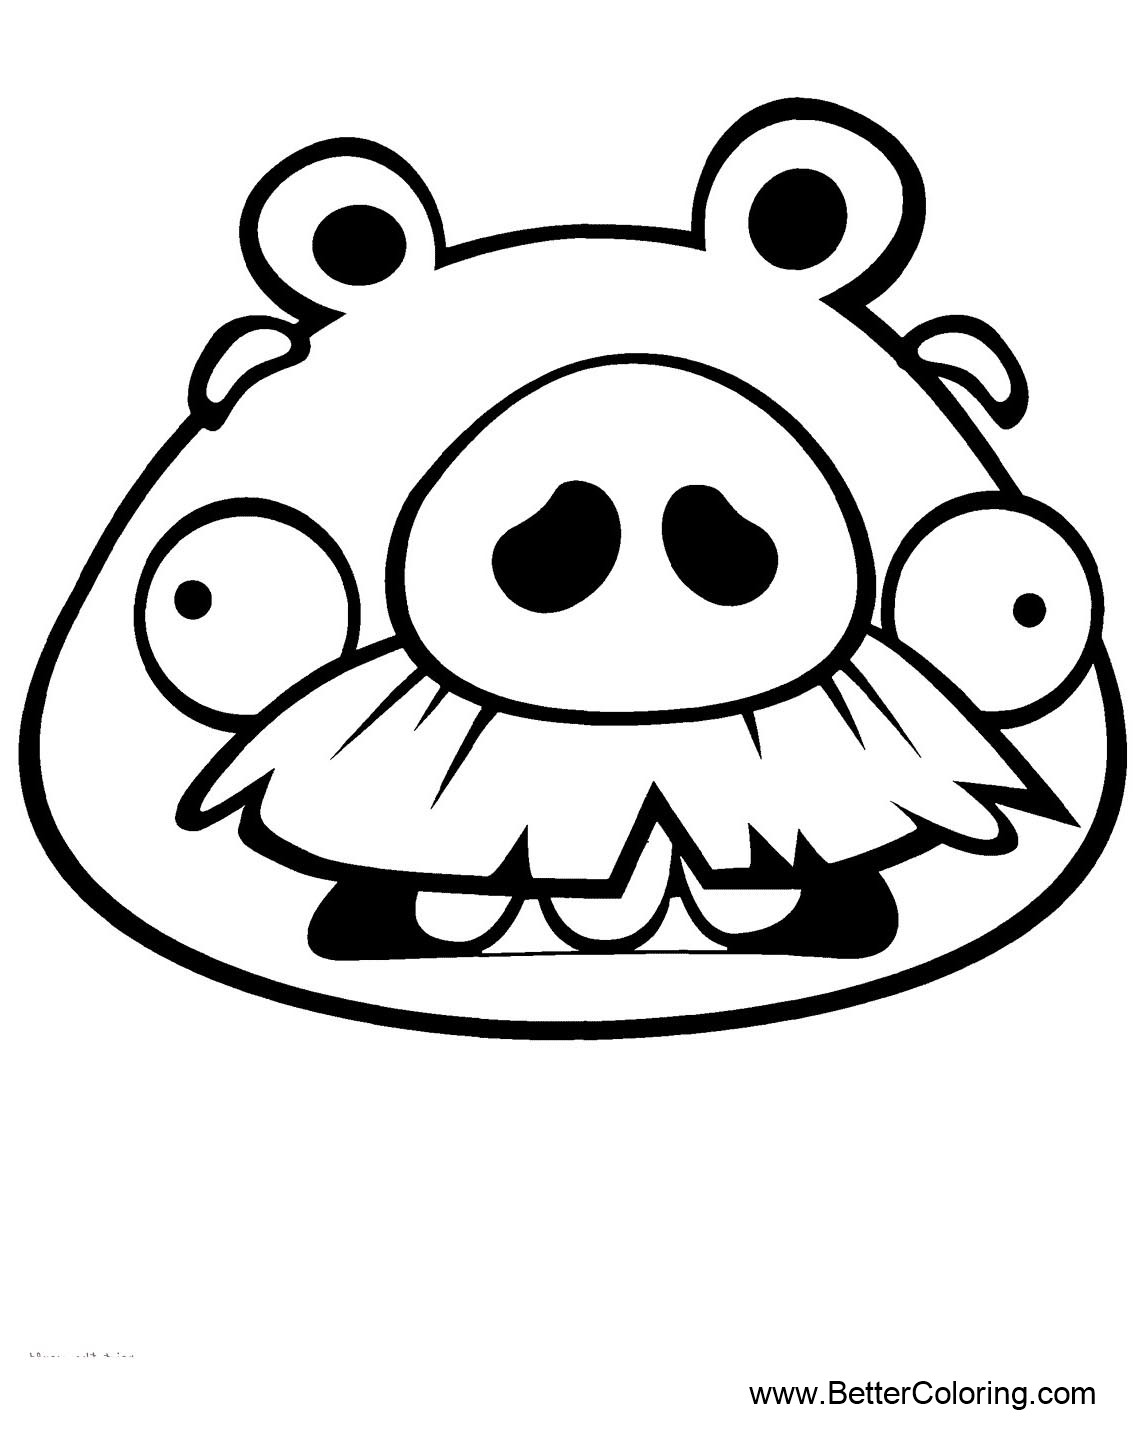 Angry Birds Coloring Pages Old Pig - Free Printable Coloring Pages